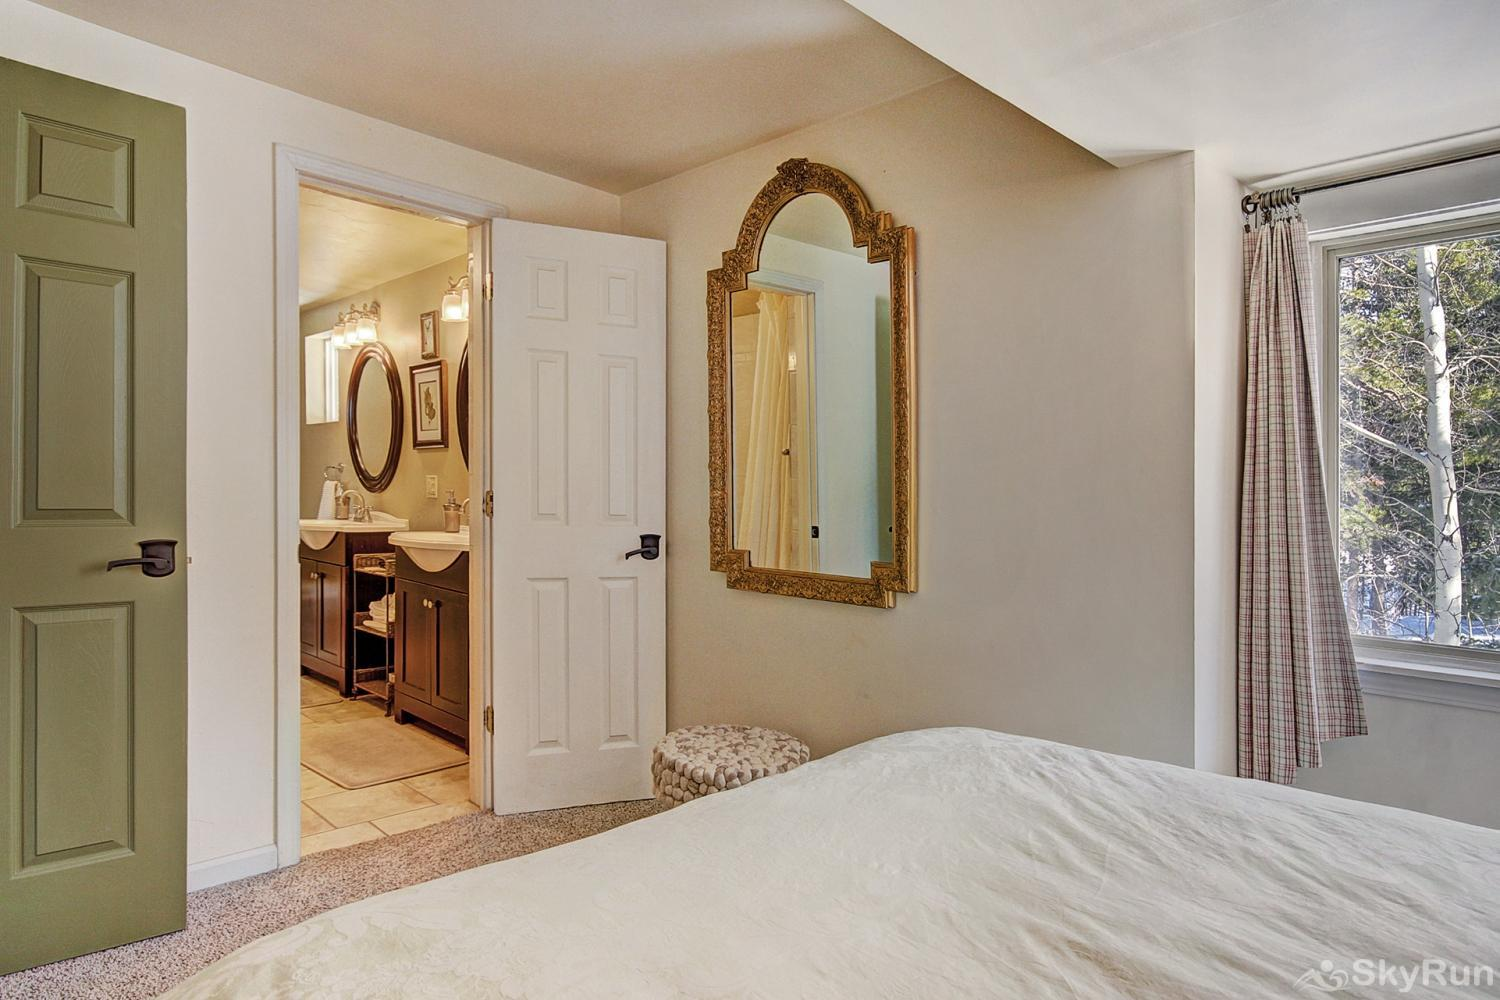 High Point Chateau Upper level queen bedroom